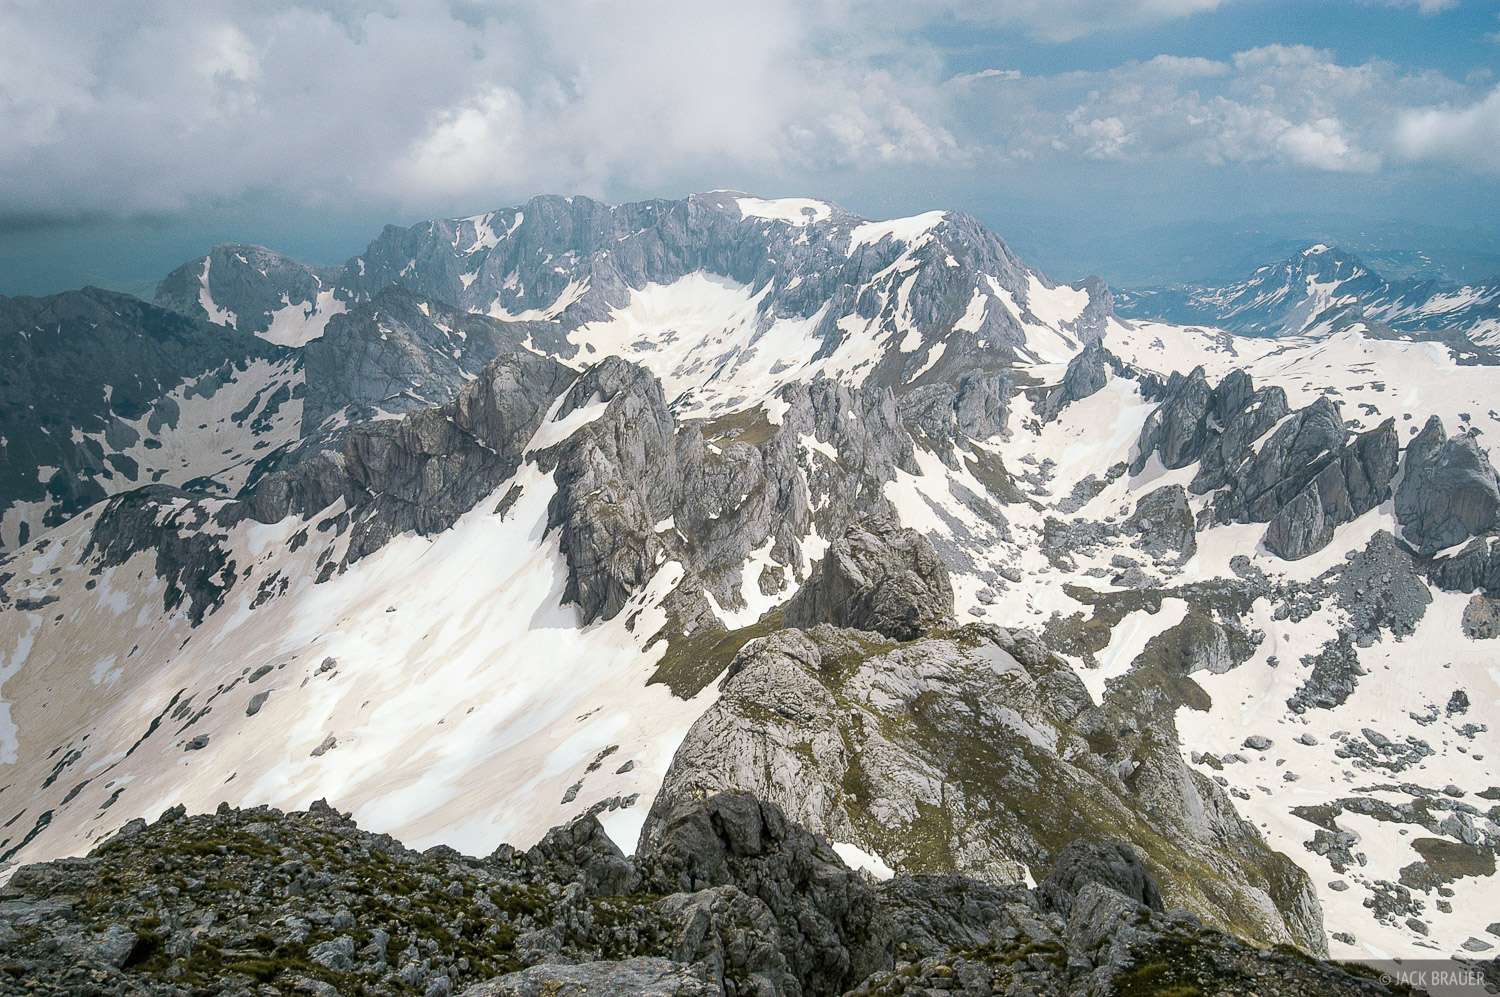 View east from summit of Bobotov Kuk, the tallest mountain in the Durmitor range at 2523 m - June.